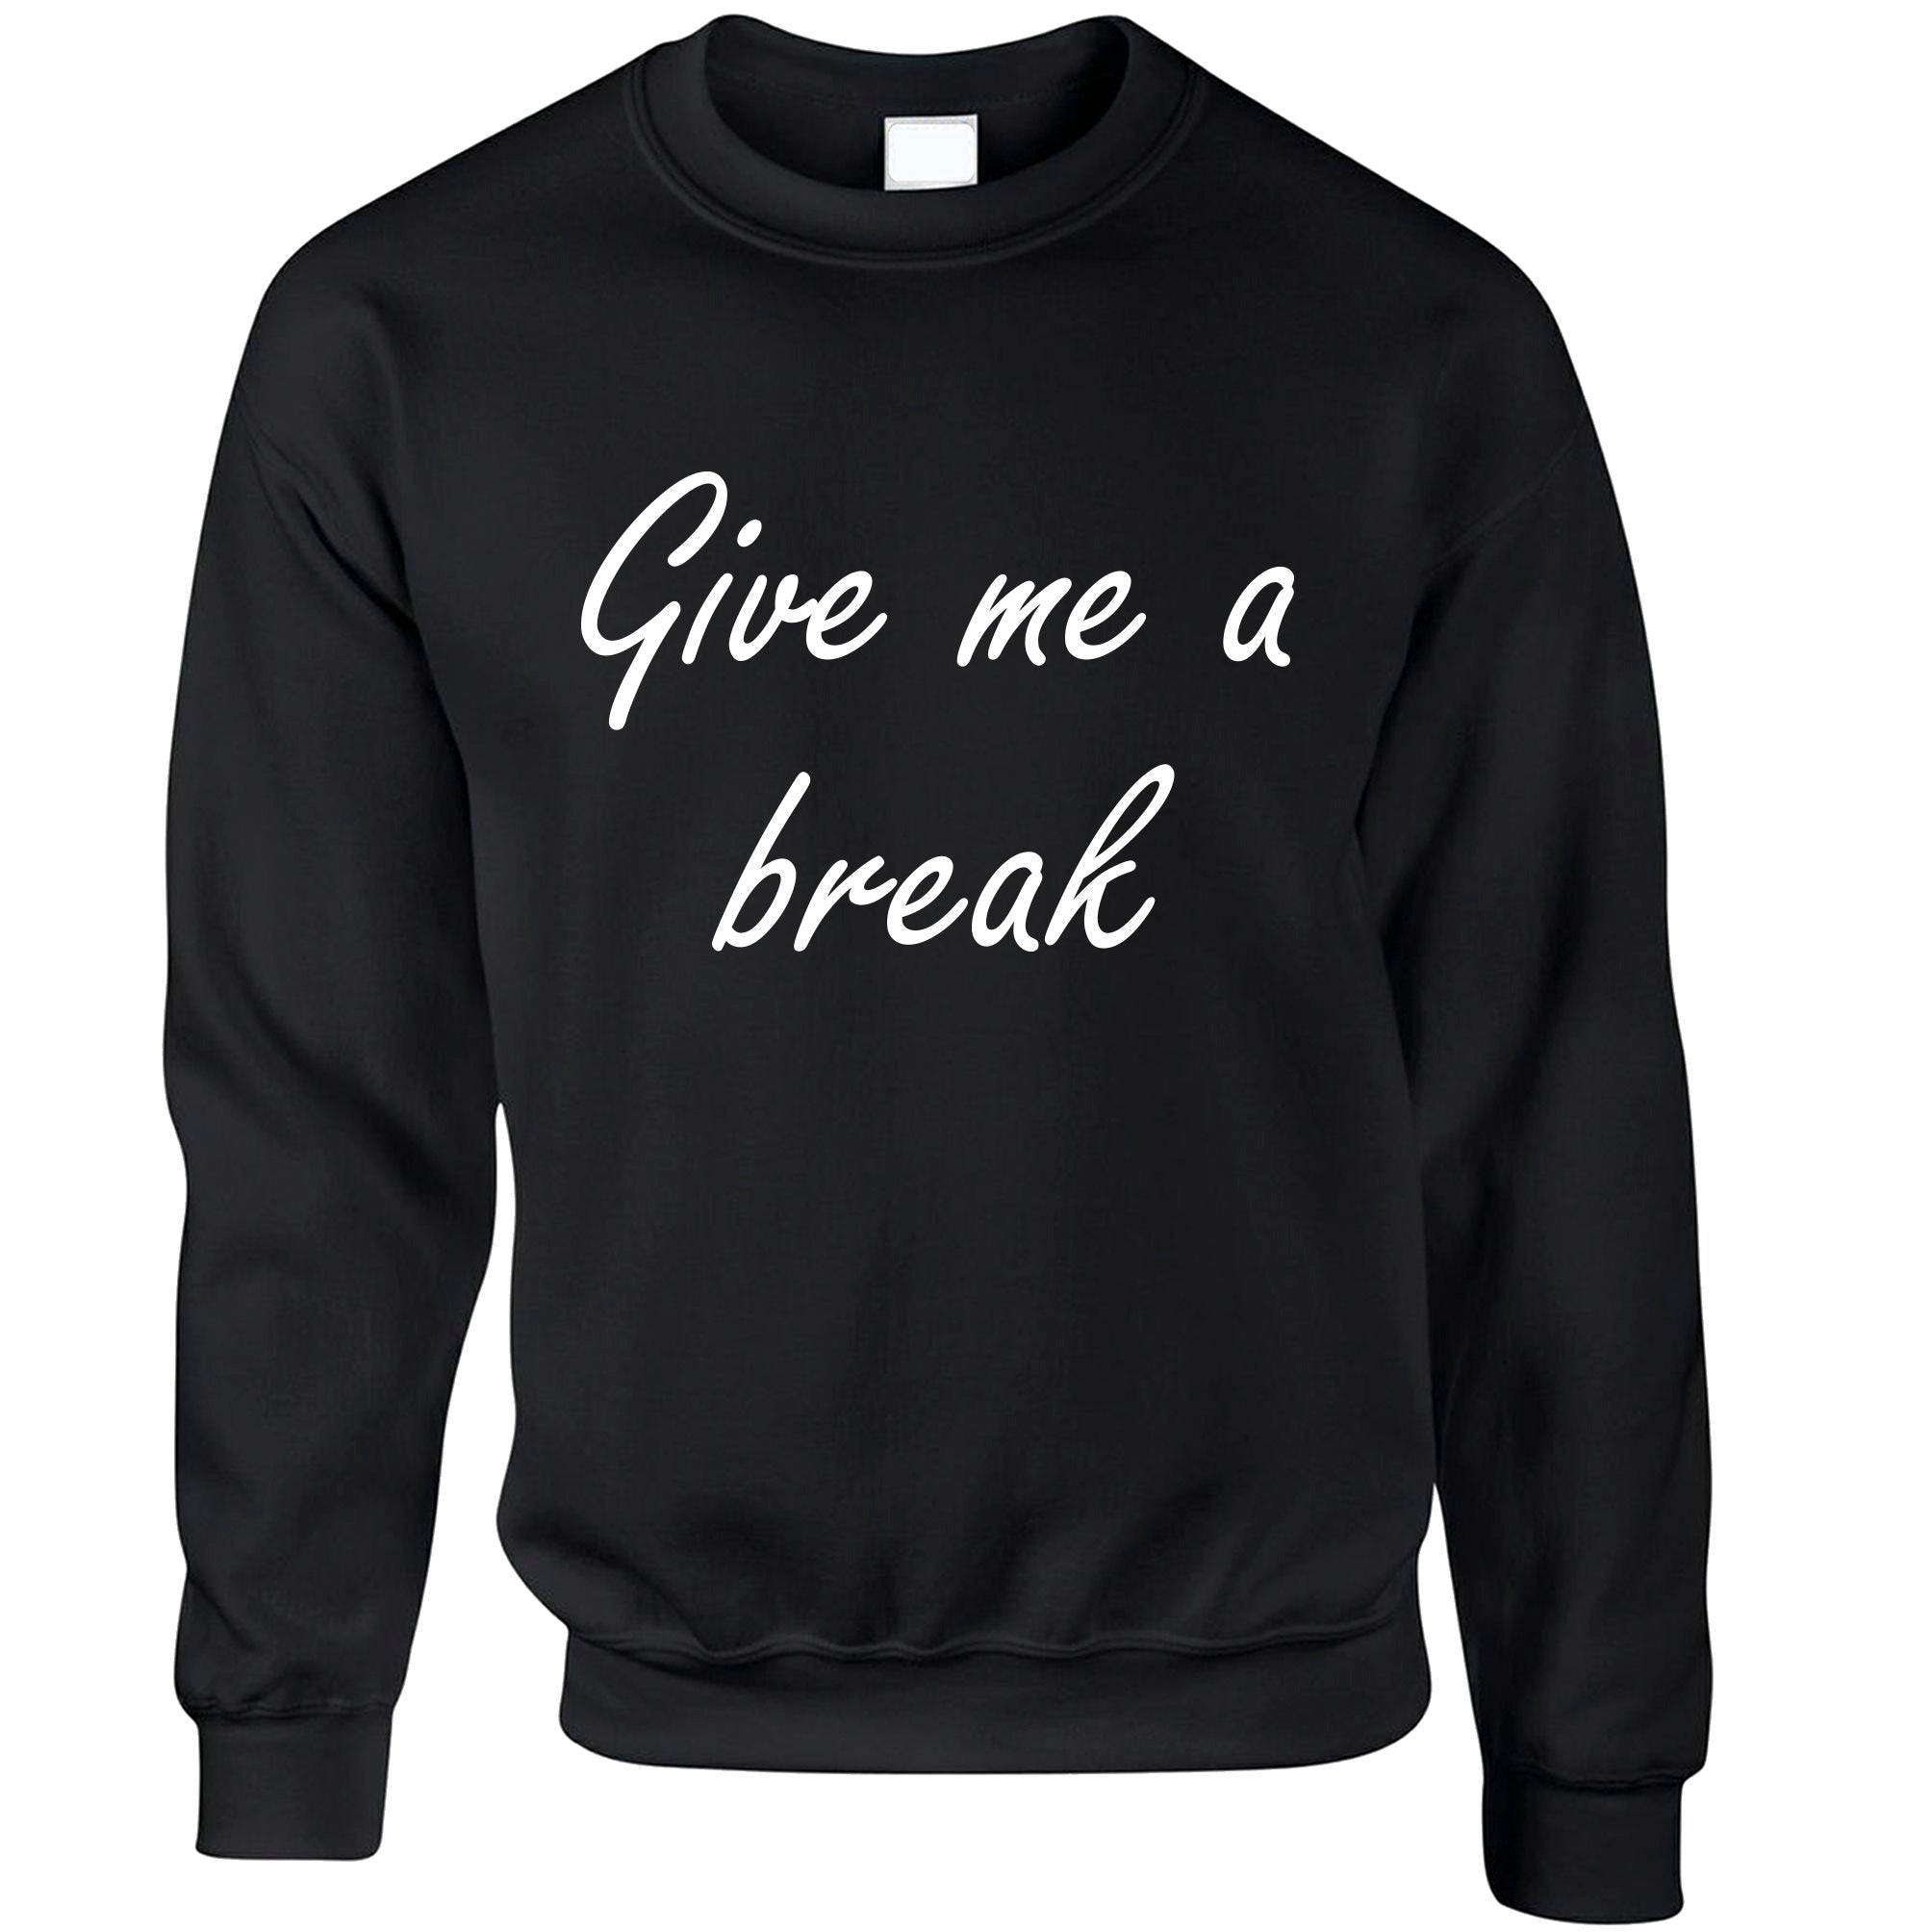 Novelty Jumper Give Me A Break Joke Slogan Sweatshirt Sweater